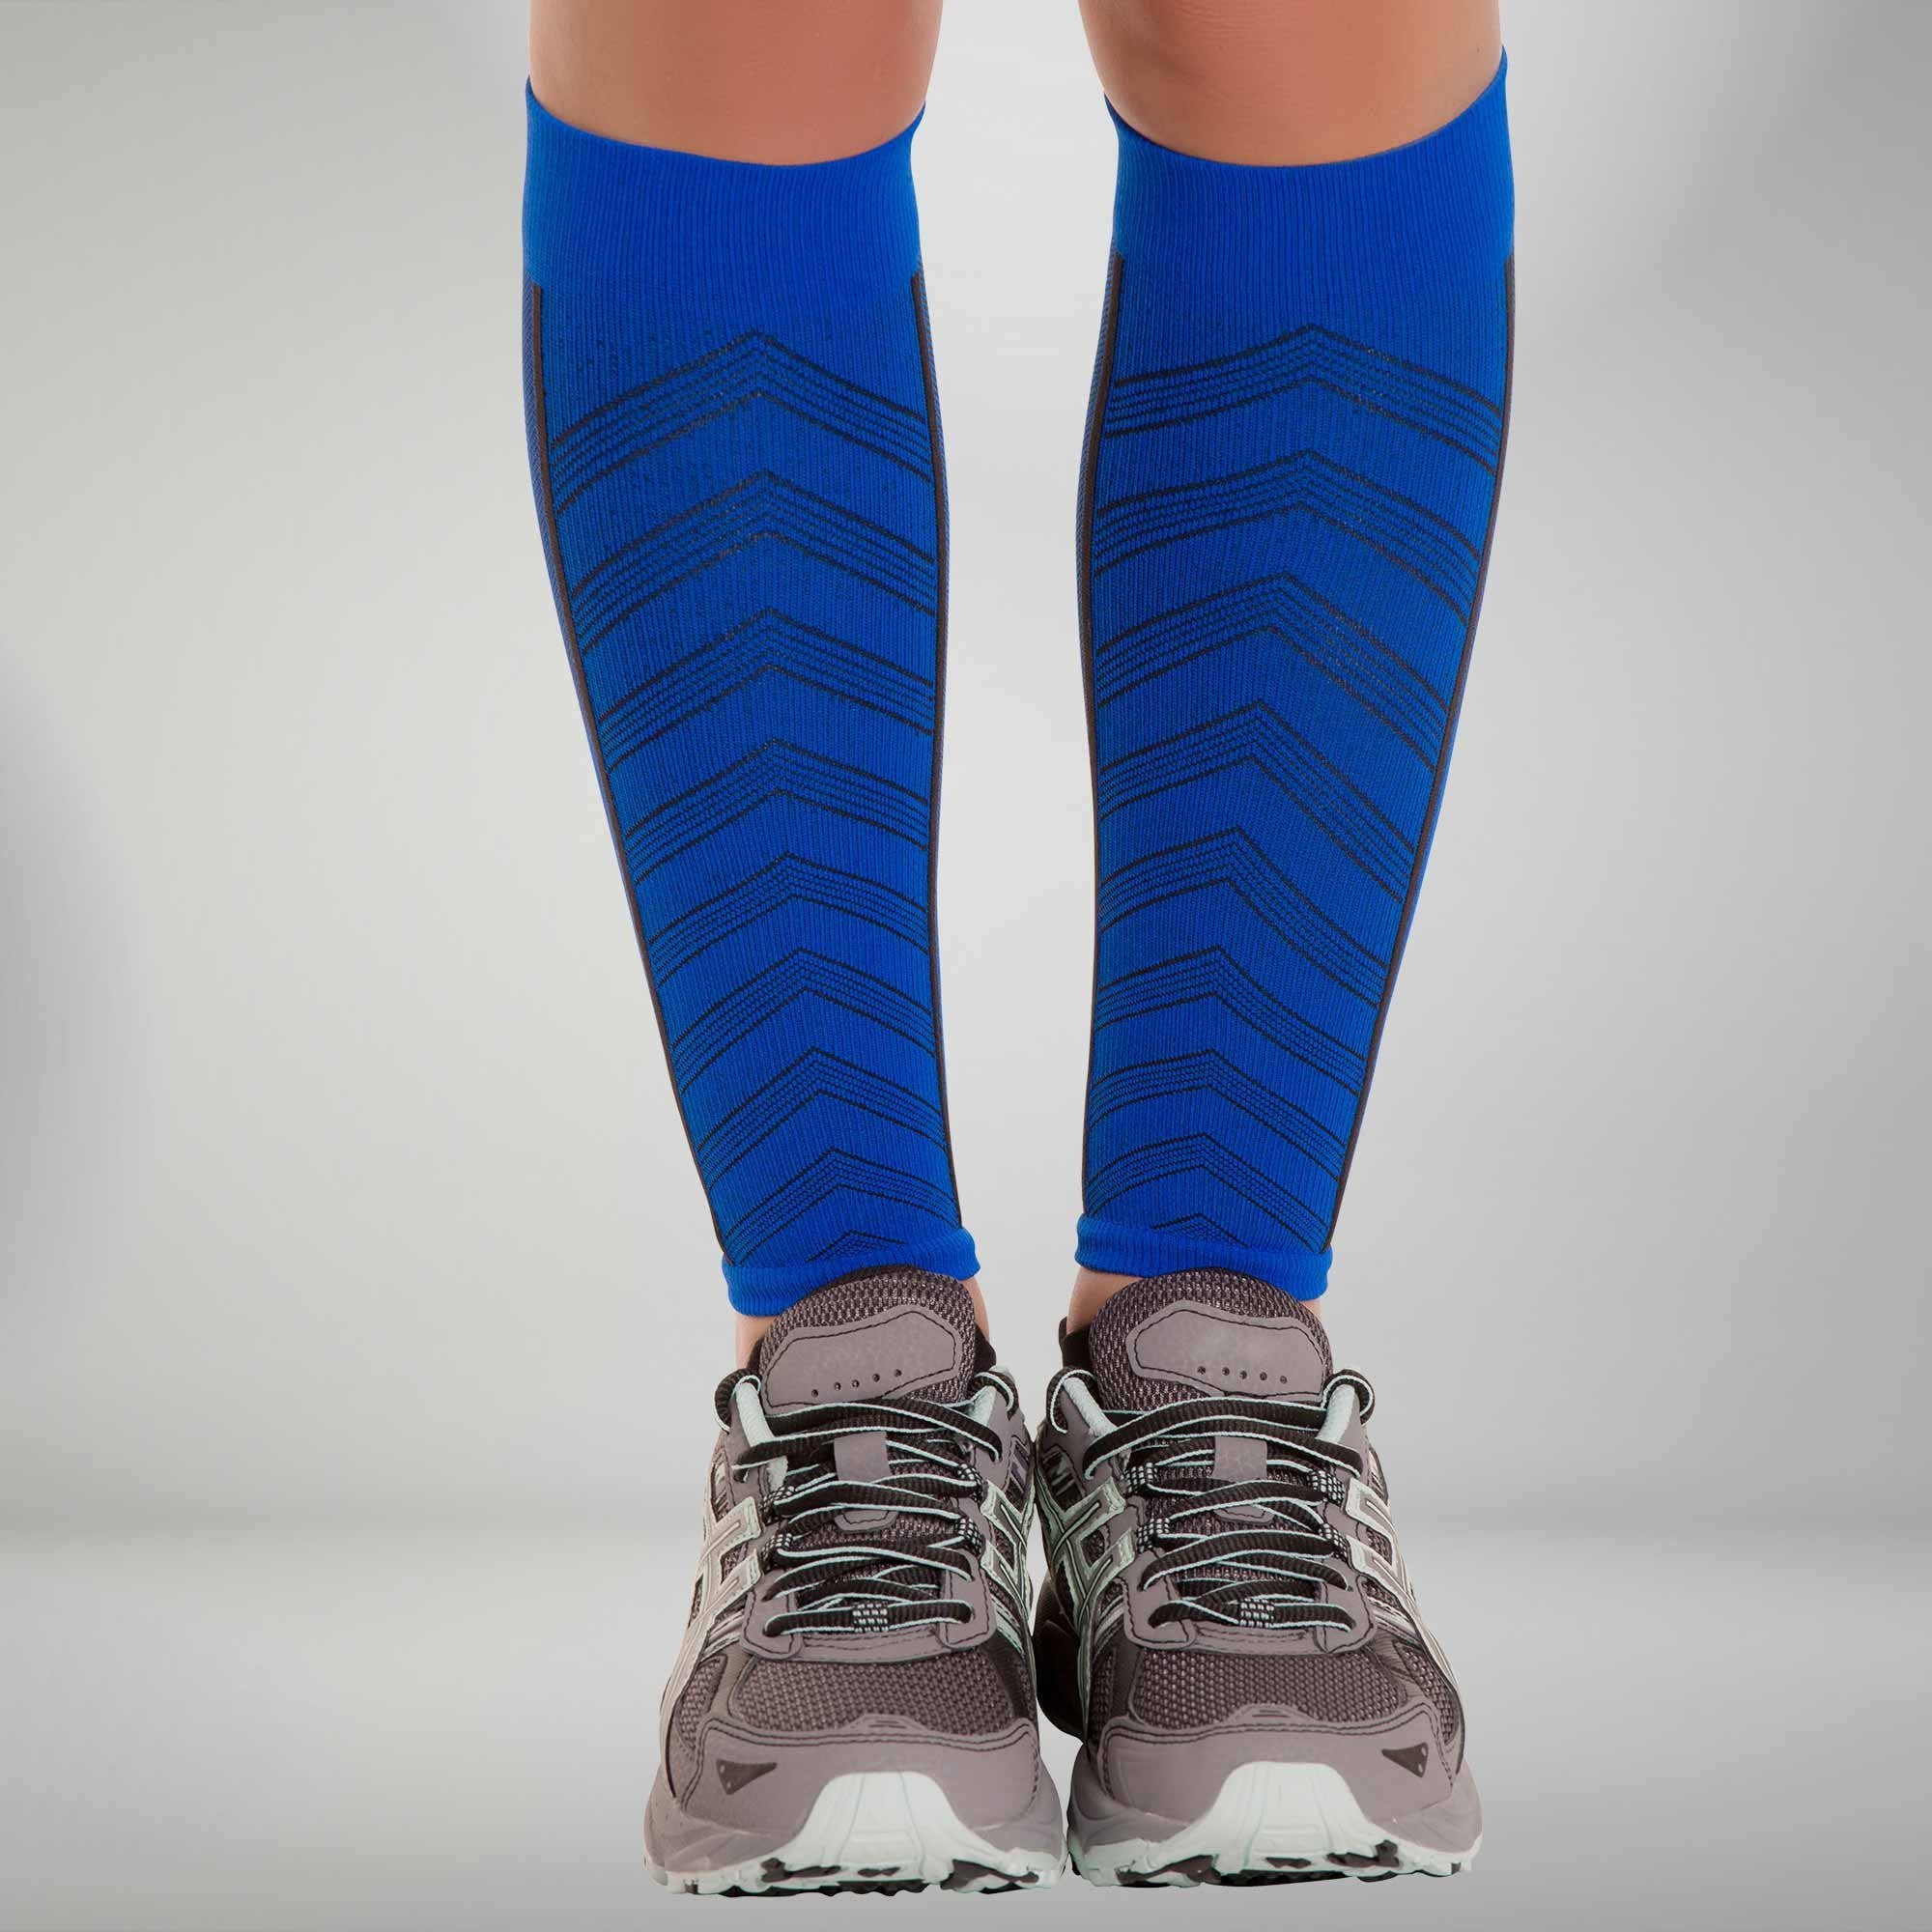 Blue in Color Size S//M NEW ZENSAH Compression Leg Sleeves Stockings